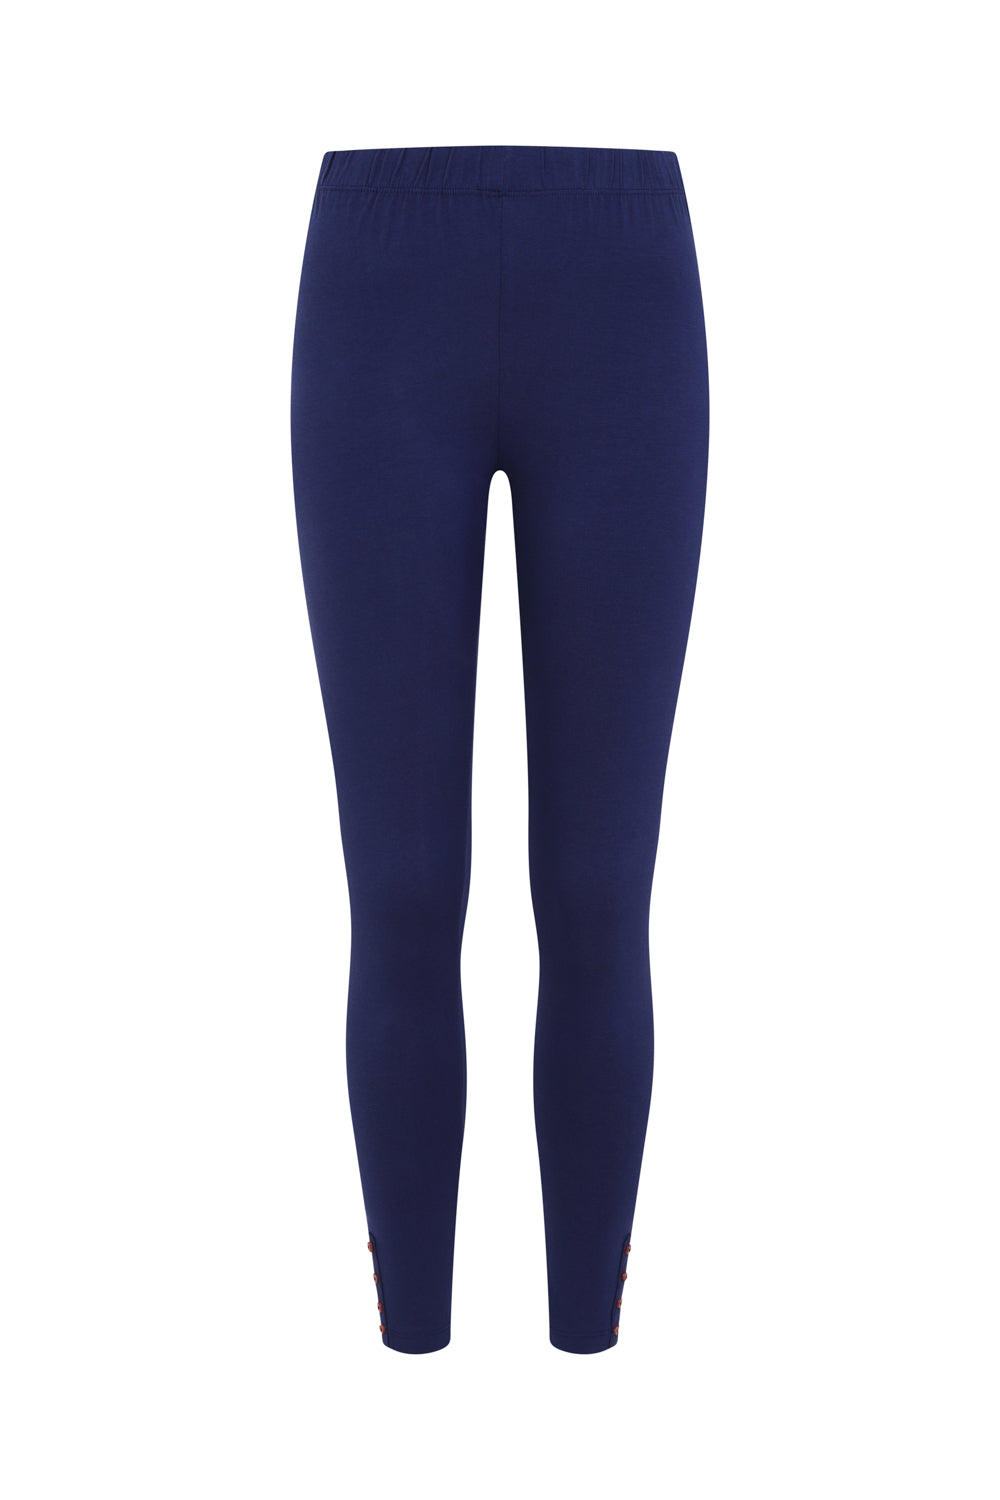 Lucky Legging - Blue Solid